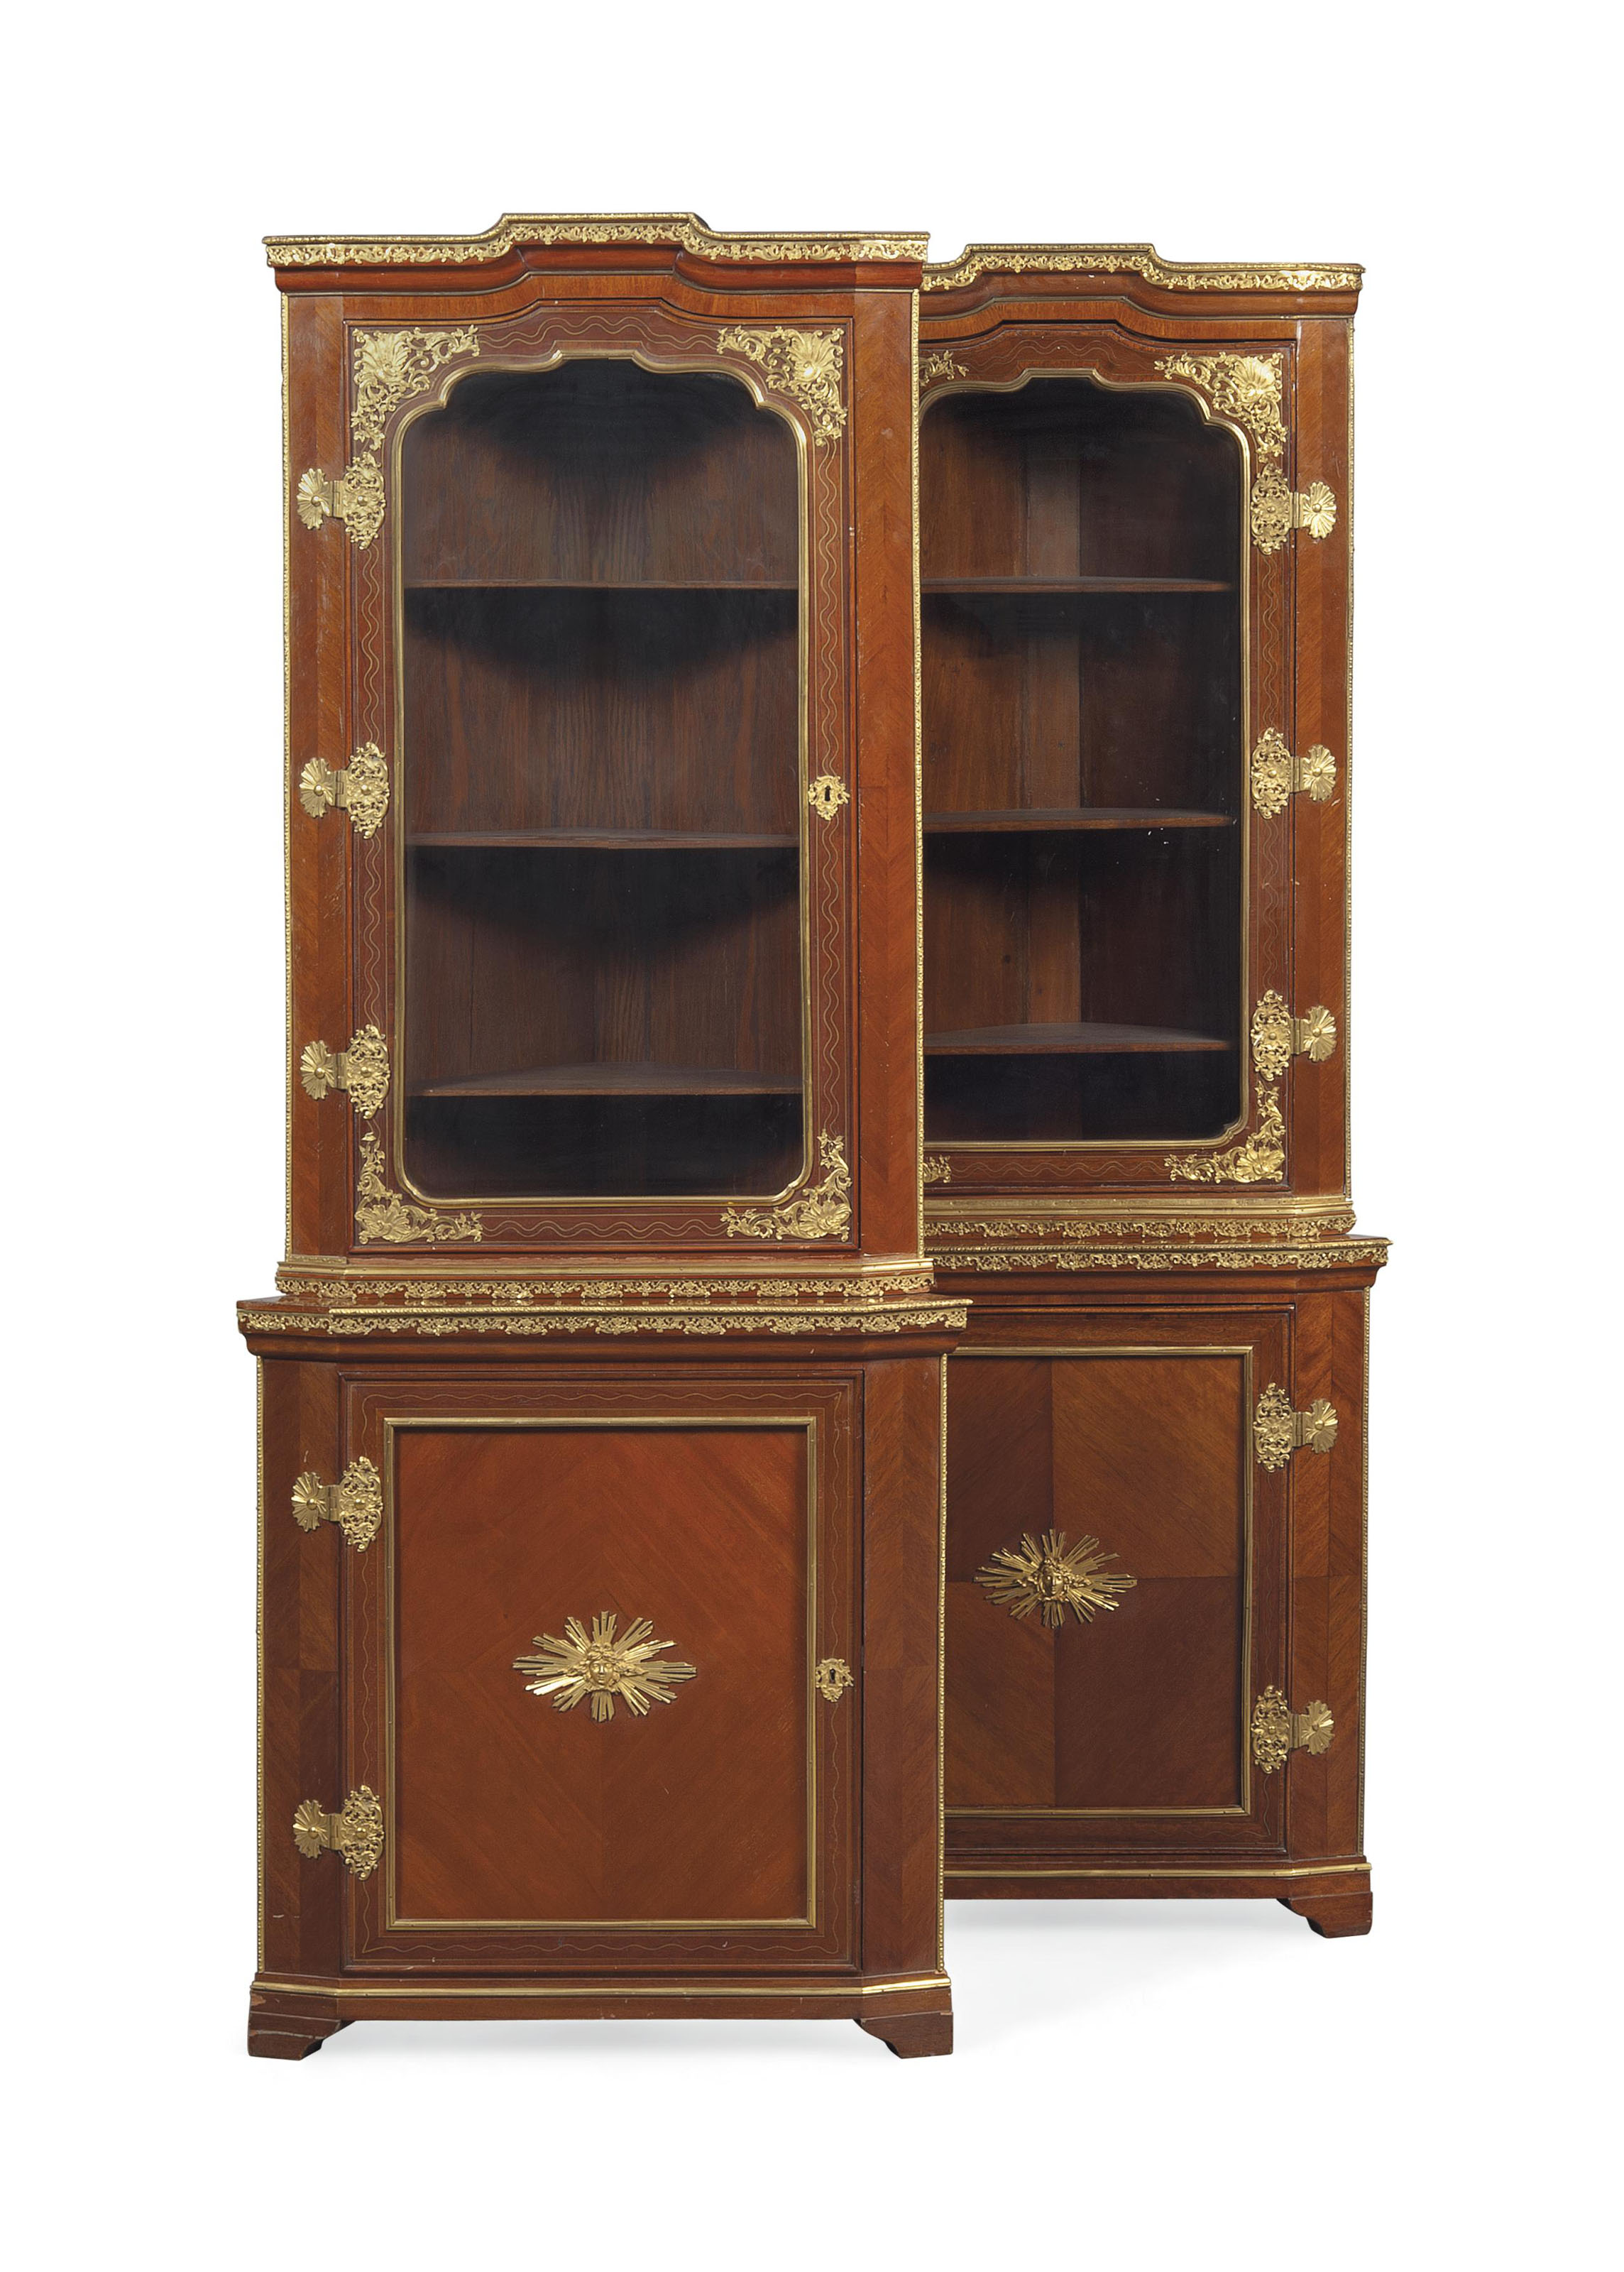 A PAIR OF GERMAN ORMOLU-MOUNTED AND BRASS-INLAID MAHOGANY AND AMARANTH CORNER CUPBOARDS